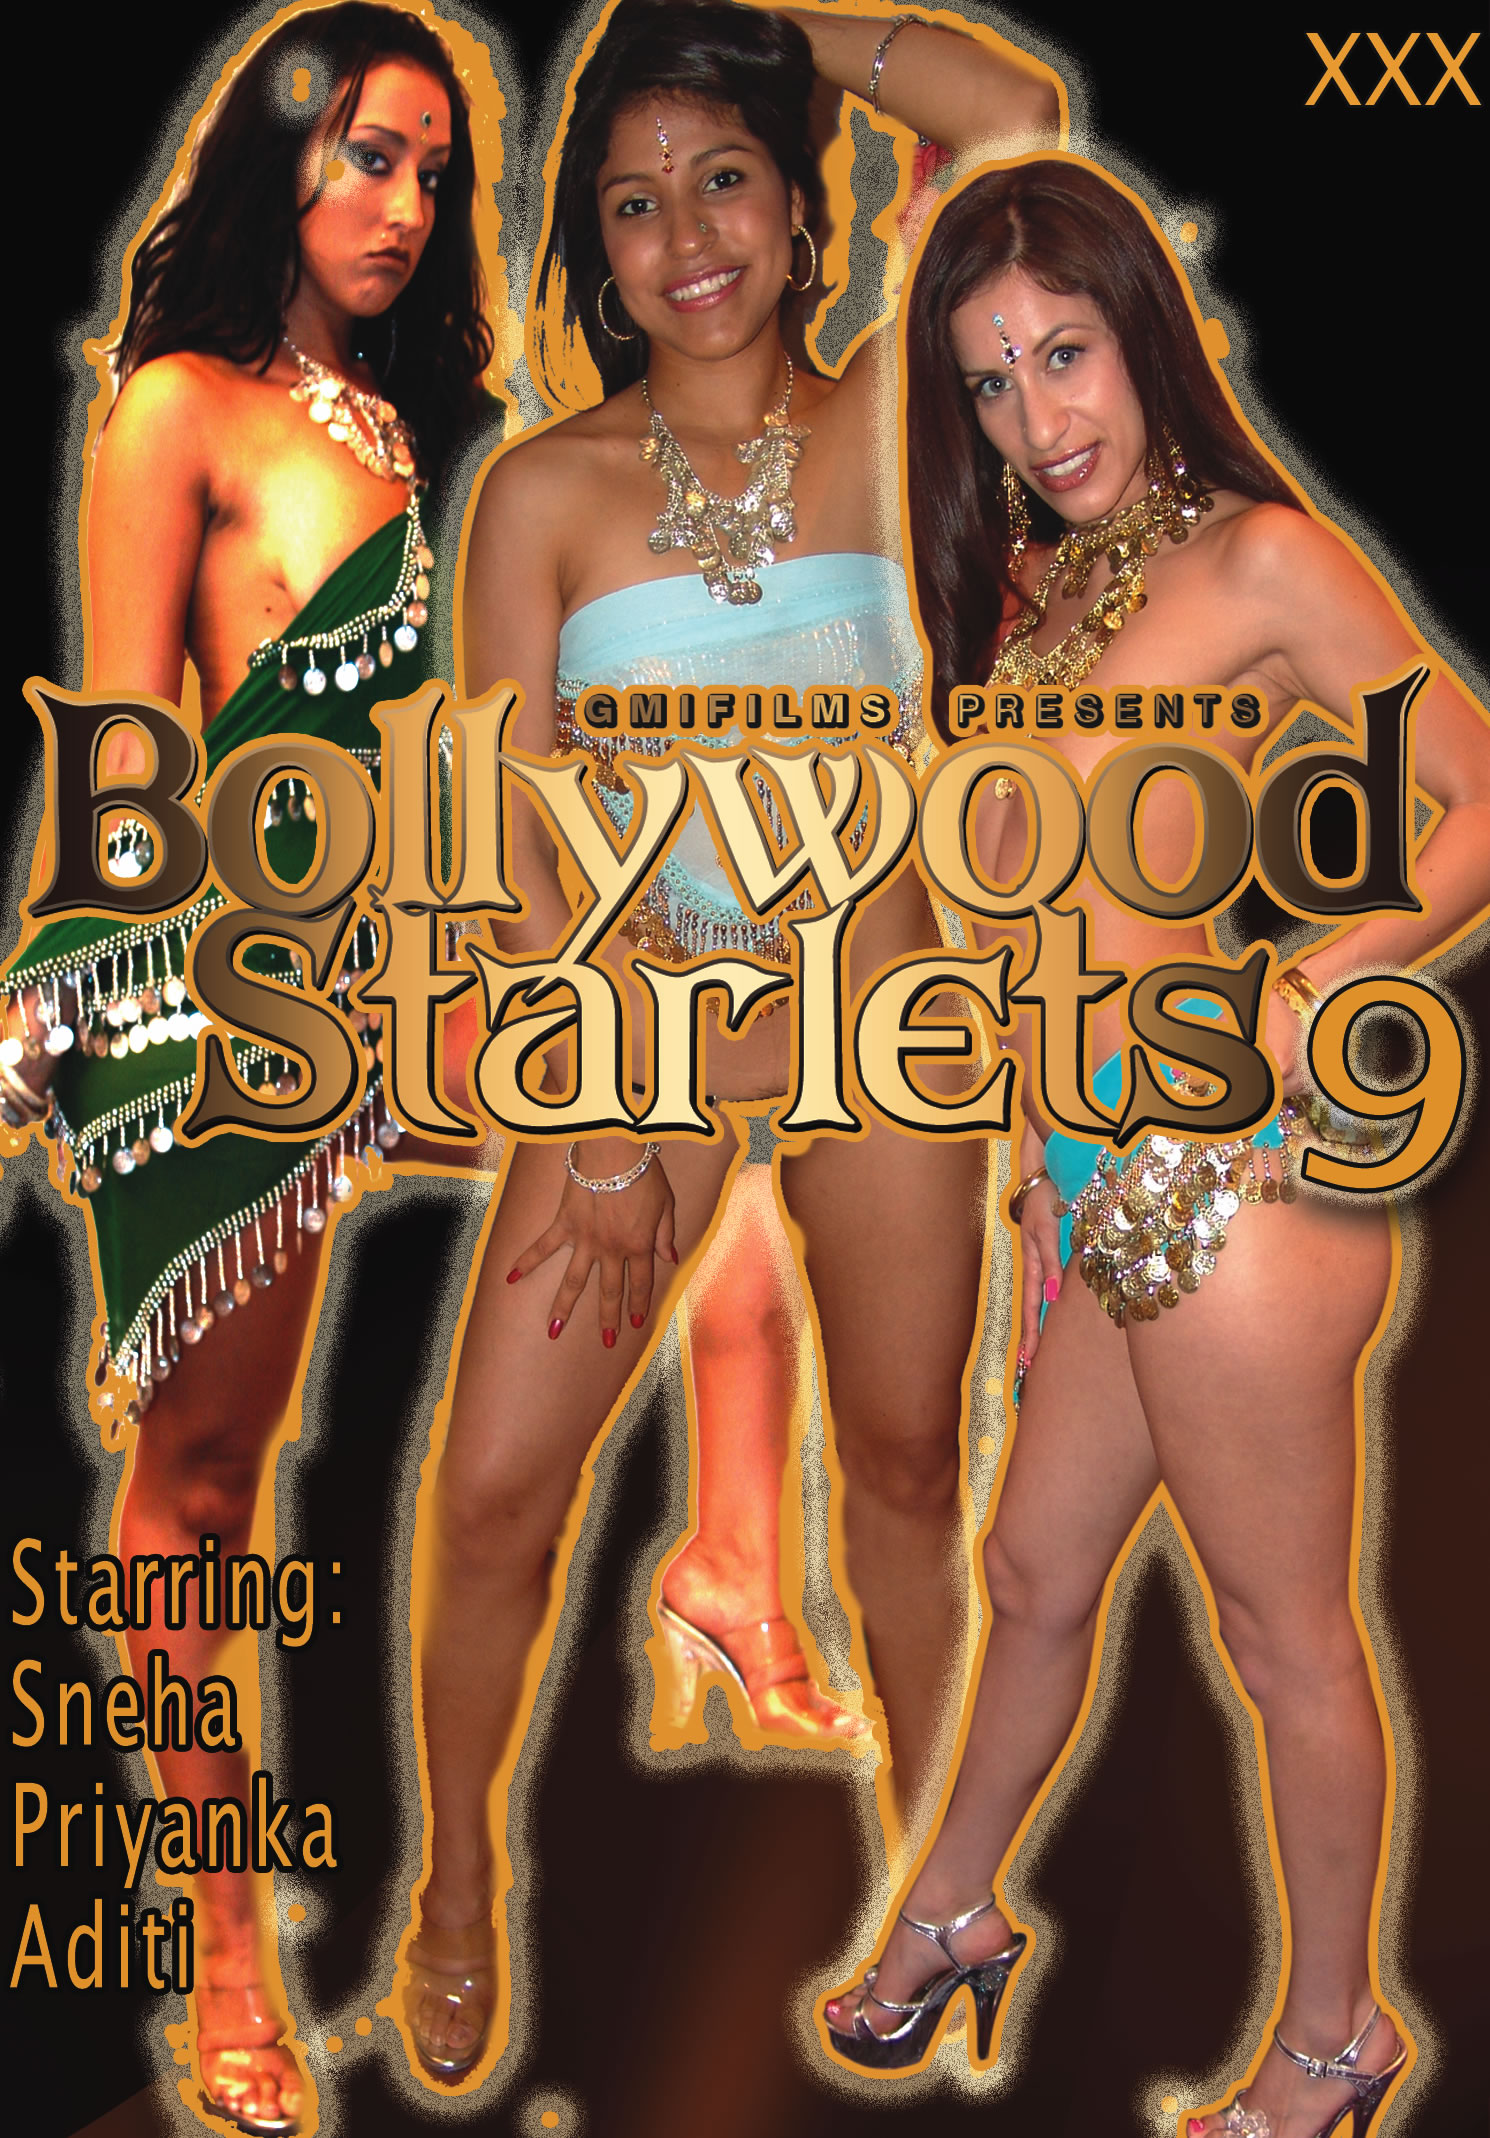 Bollywood Starlets 9